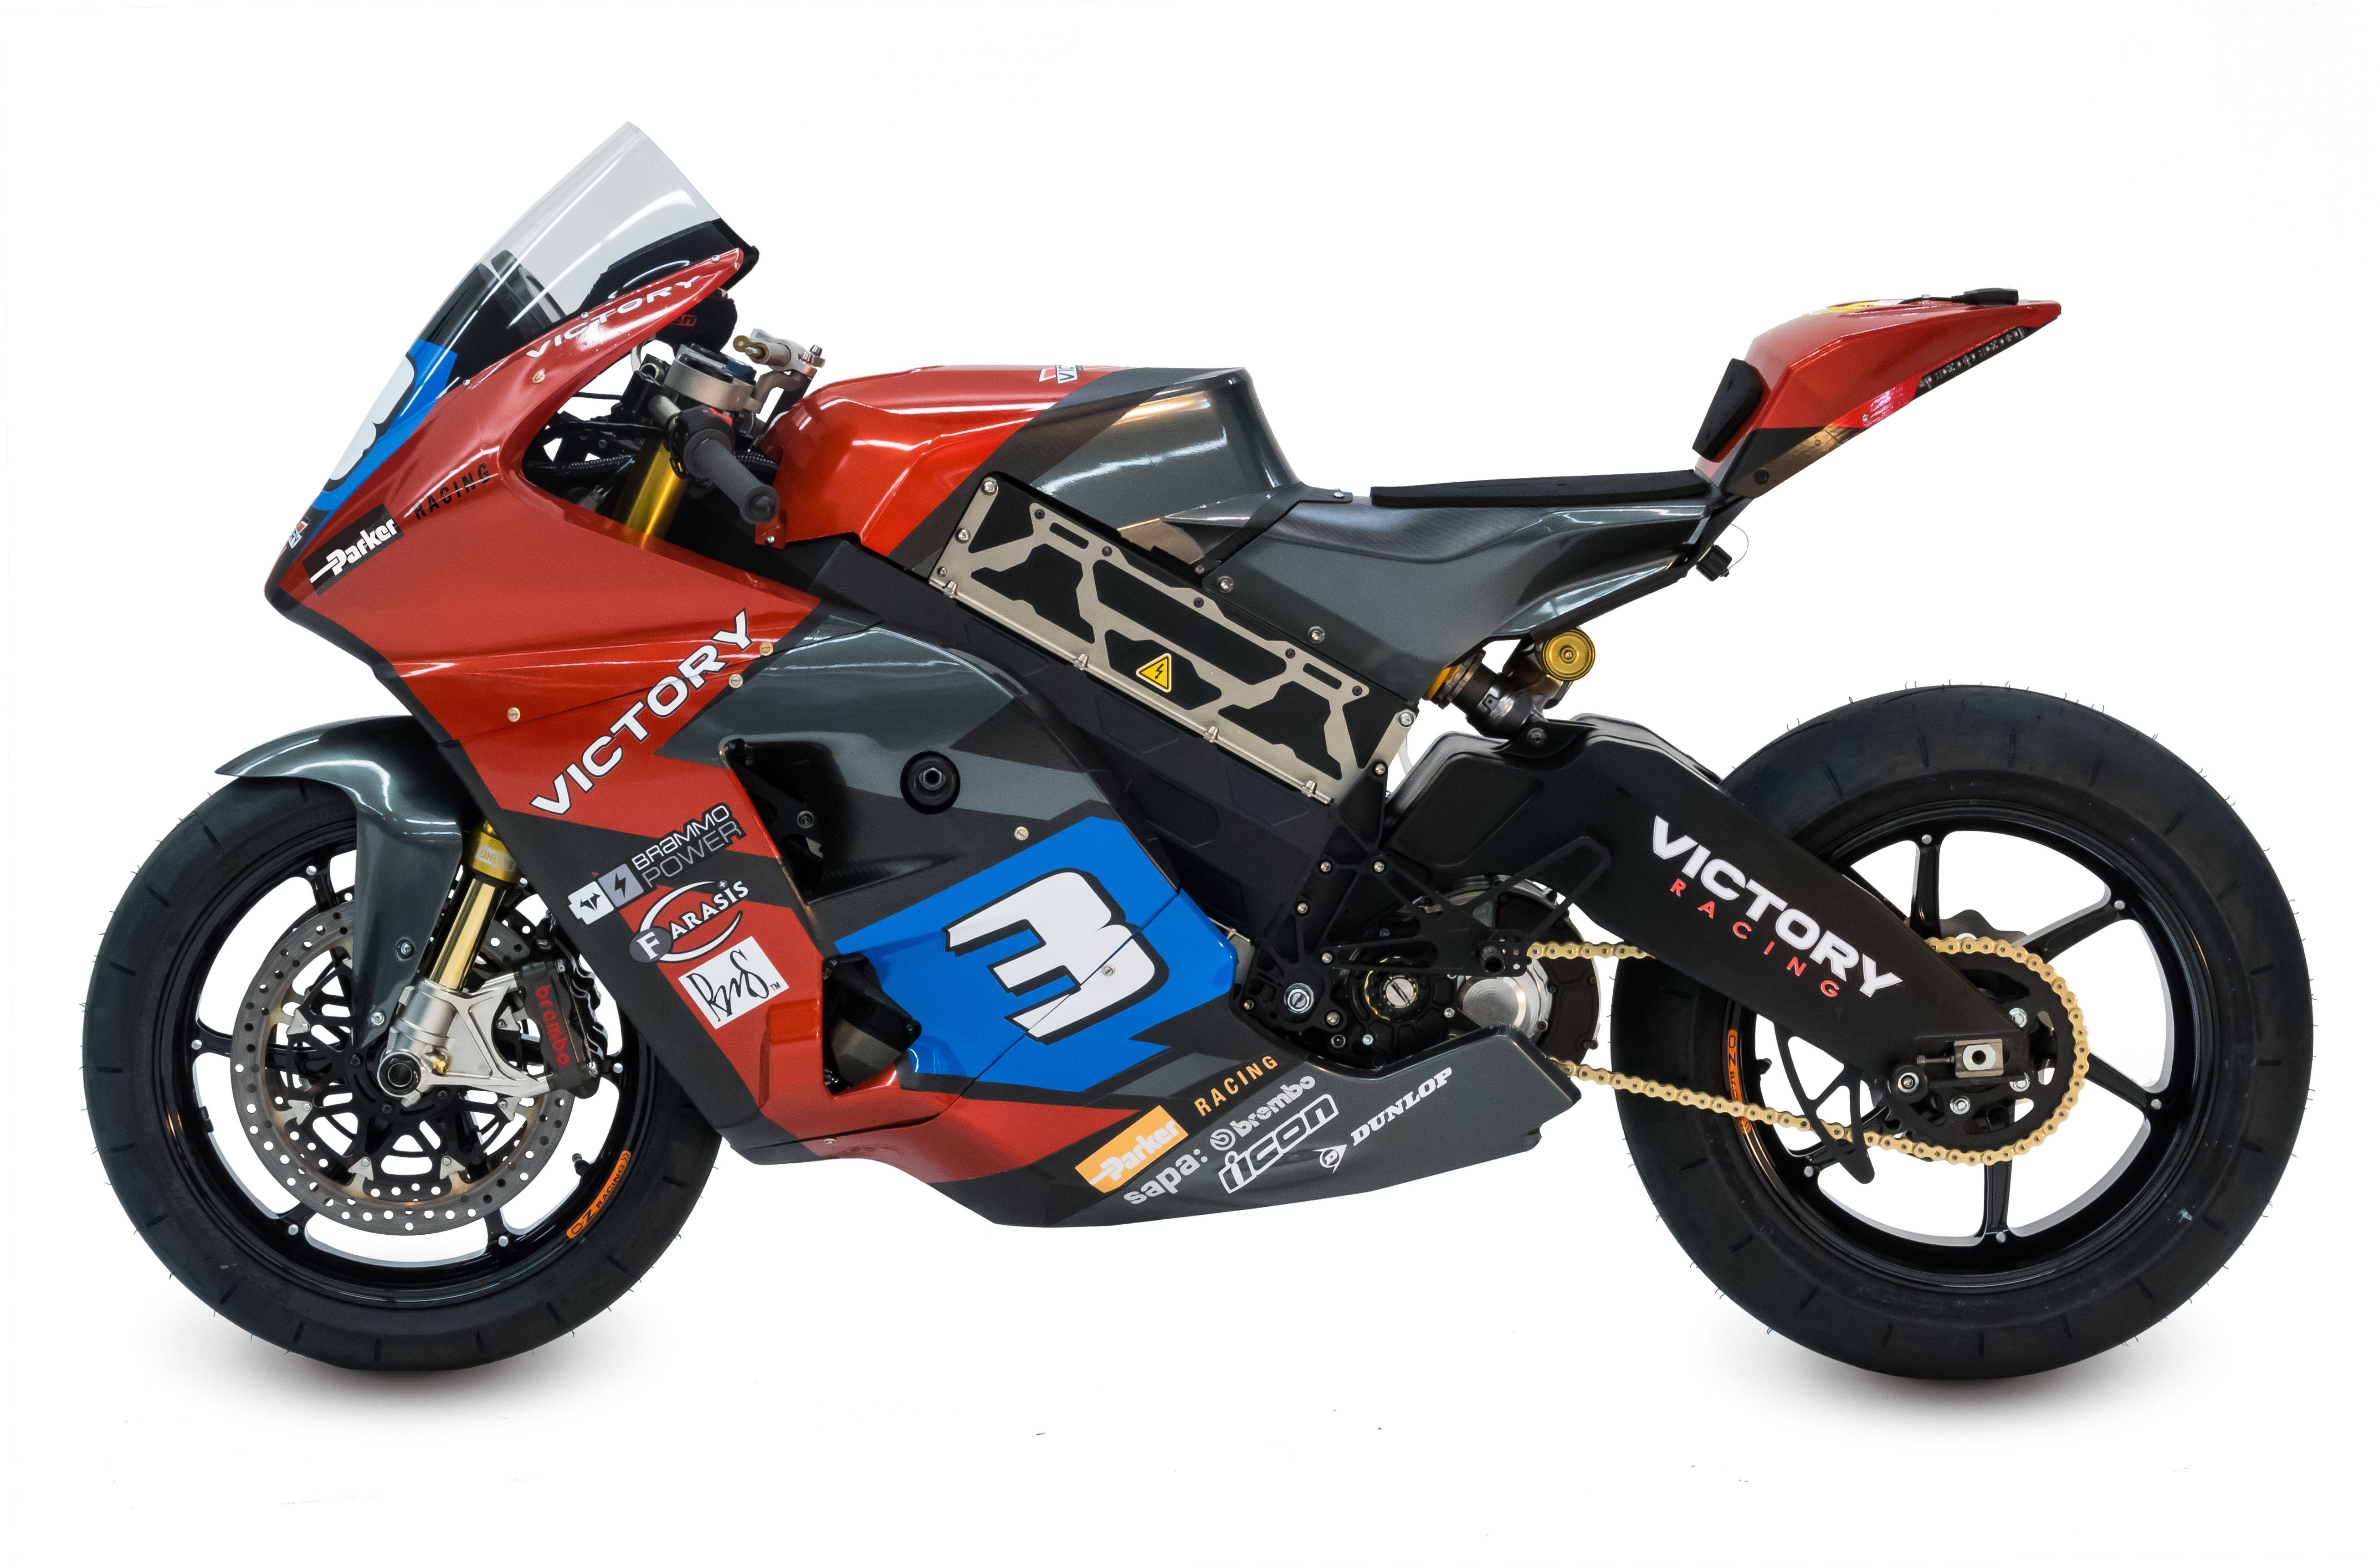 Victory S Electric Motorcycle For The 2015 Isle Of Man Tt